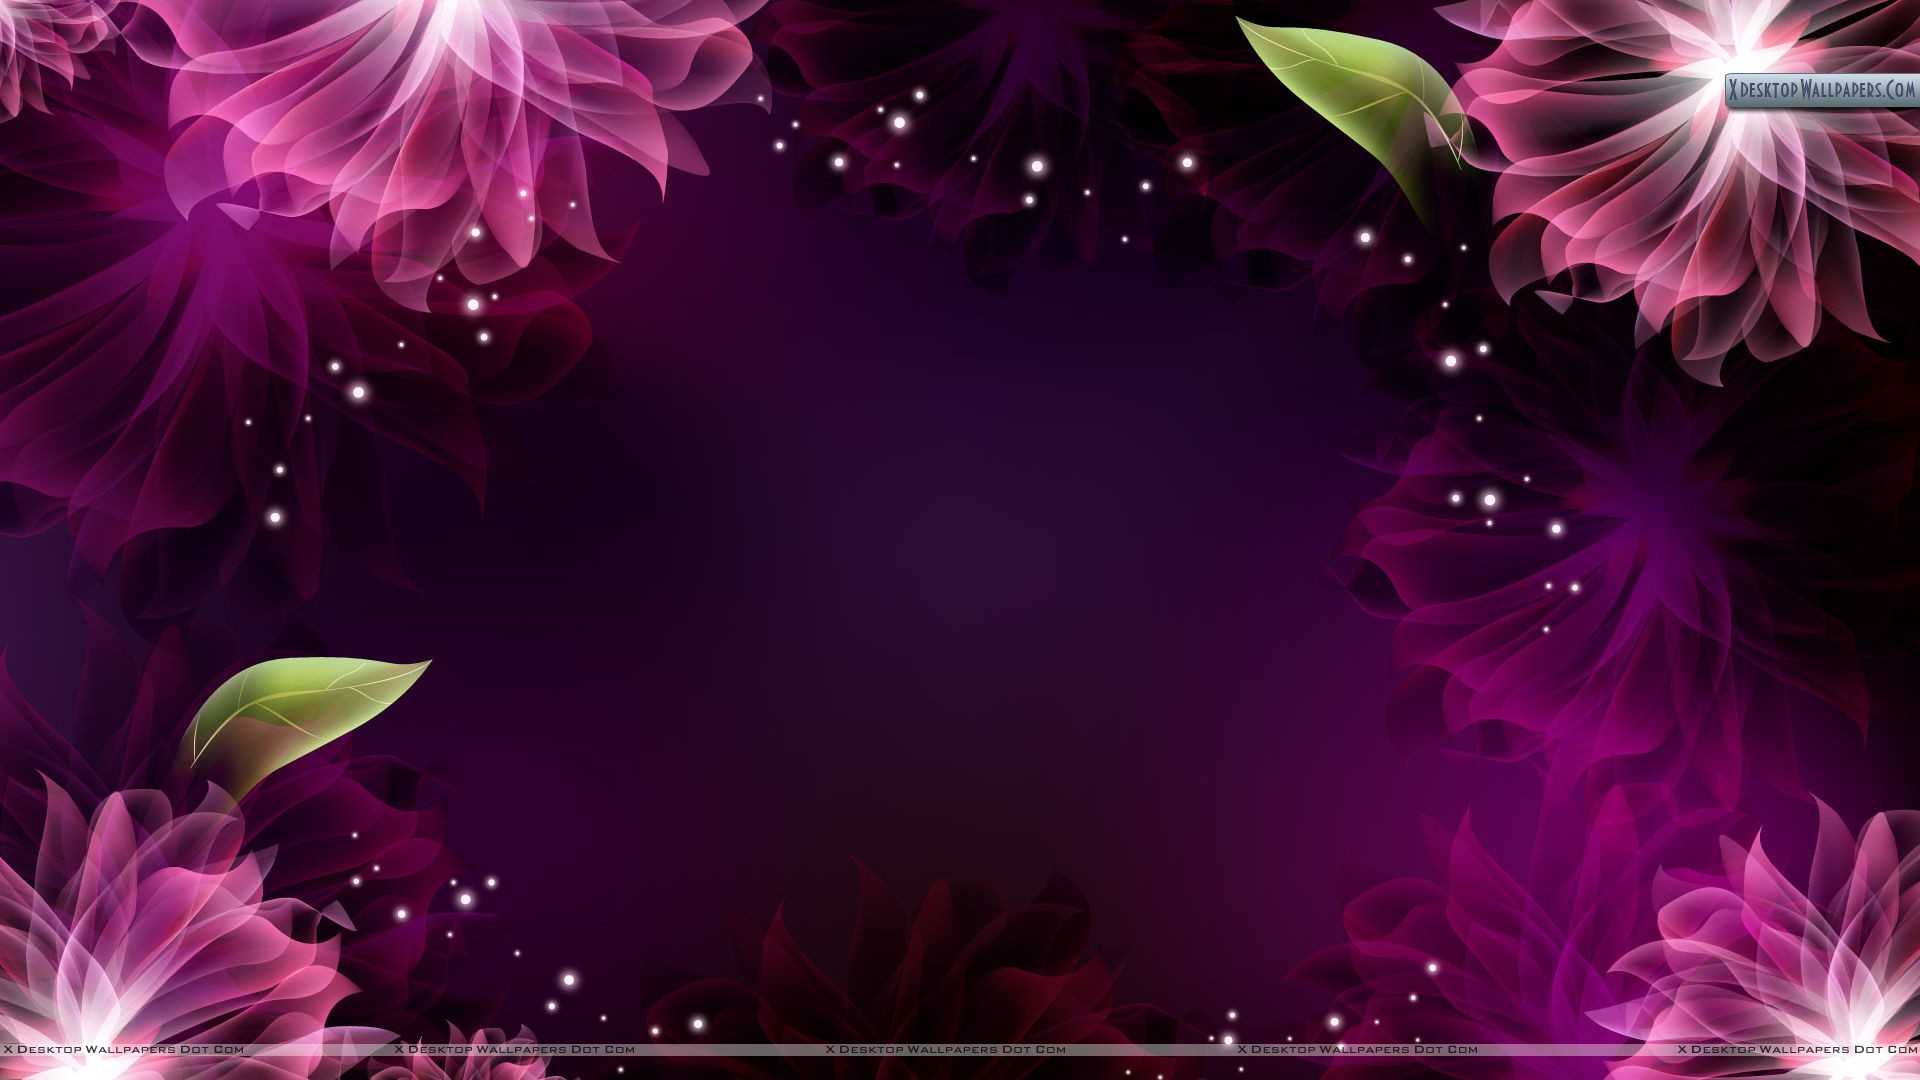 Abstract Flower Backgrounds Hd Wallpaper Background   HD Wallpapers 1920x1080